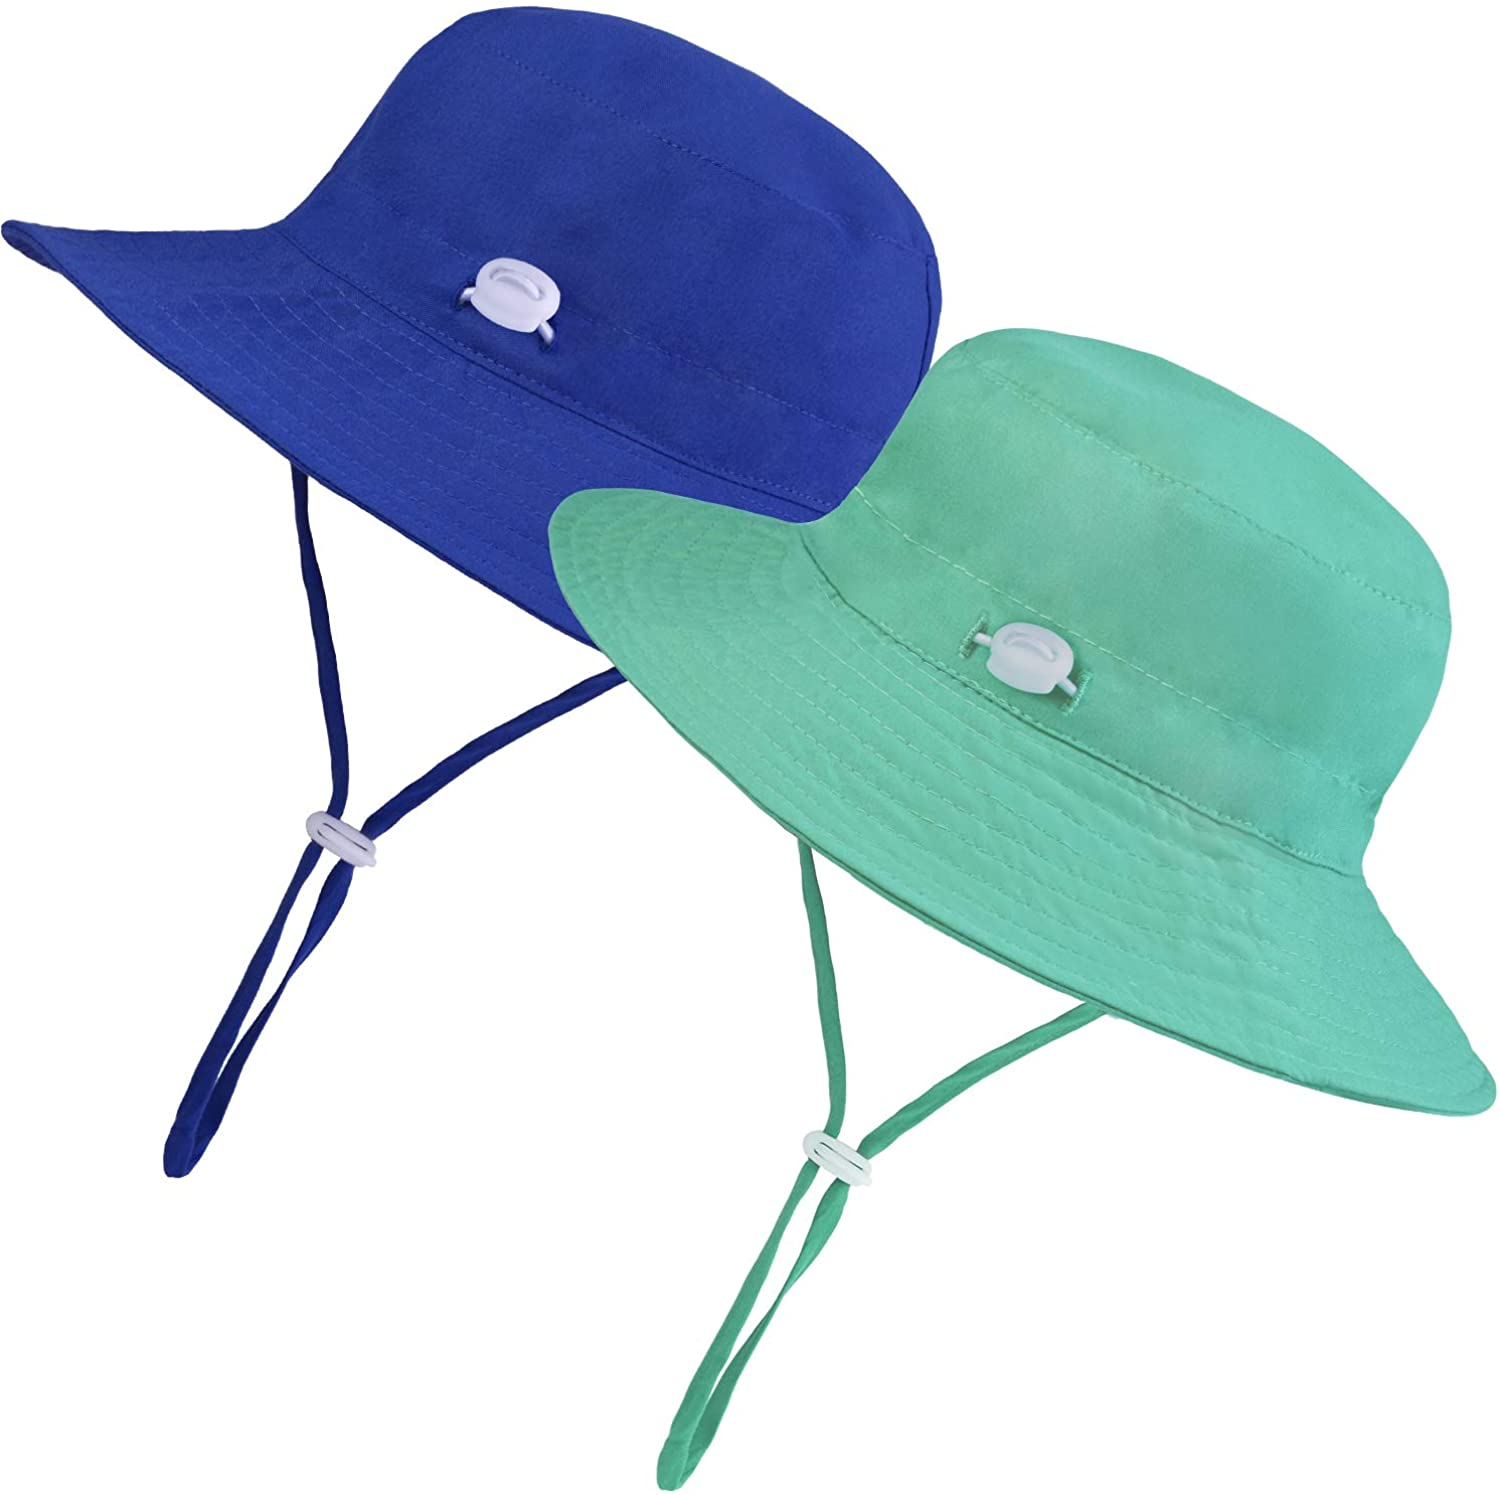 URATOT 2 Pack UPF 50+ Sun Protection Hats for Kids Boys Girls Wide Brim Chin Strap Hats Outdoor Swim Beach Bucket Sun Hat